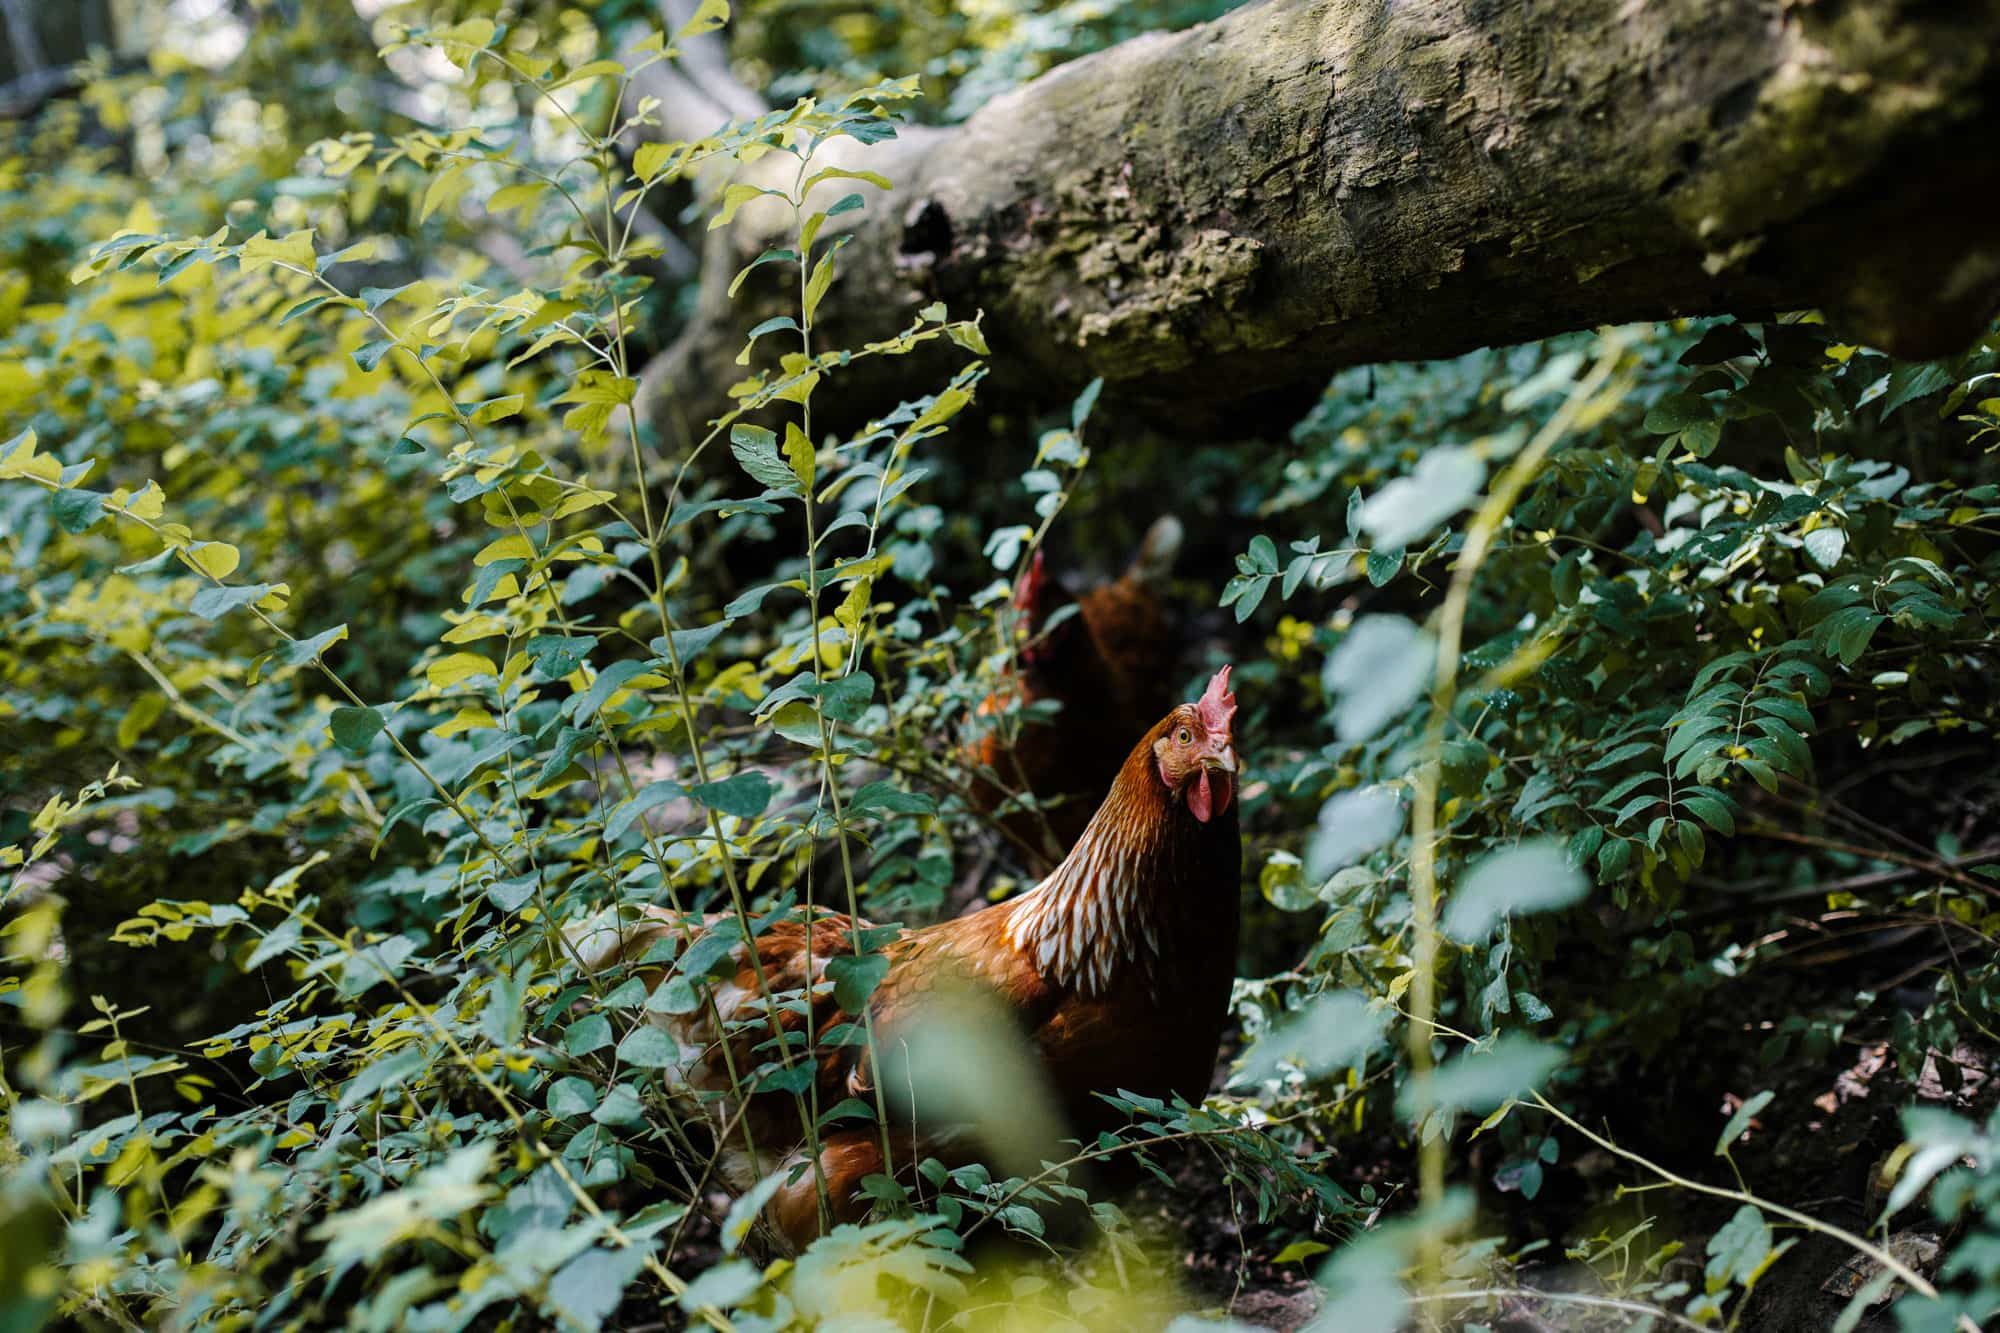 A chicken hanging out in the woods with lots of greenery.